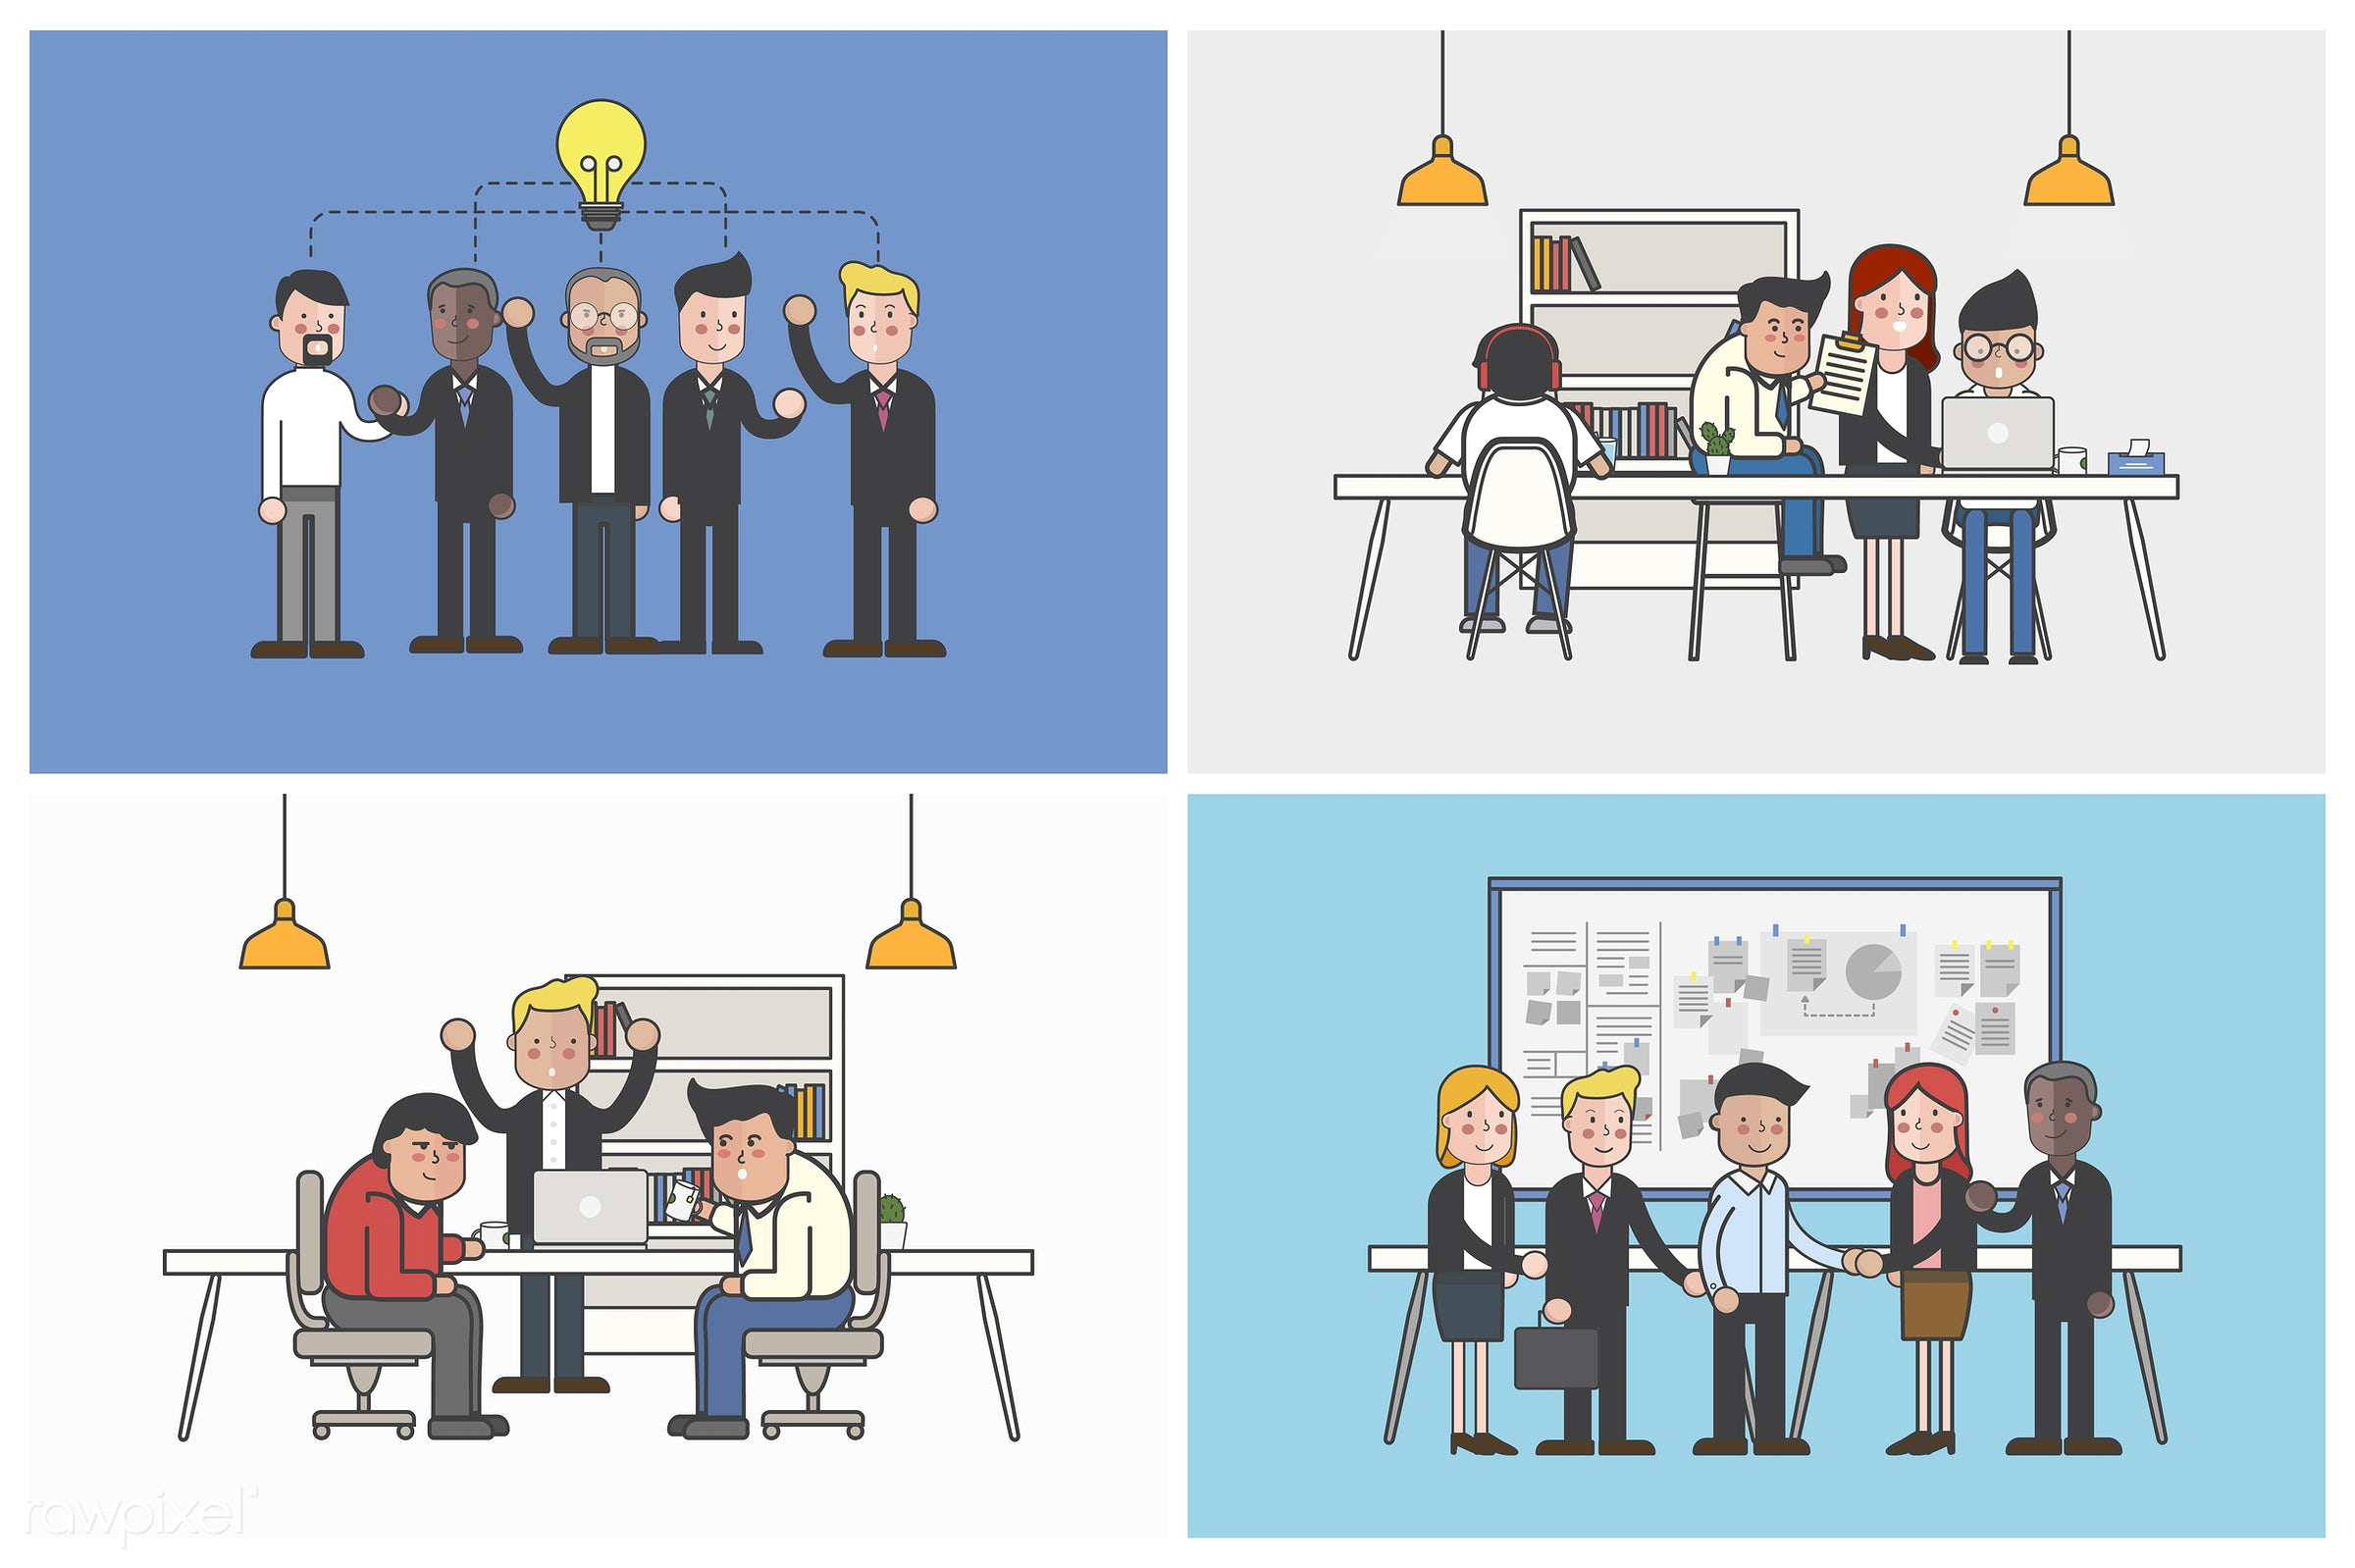 Collection of illustrated office workers in various daily situations - analysis, artwork, avatar, business, cartoon,...